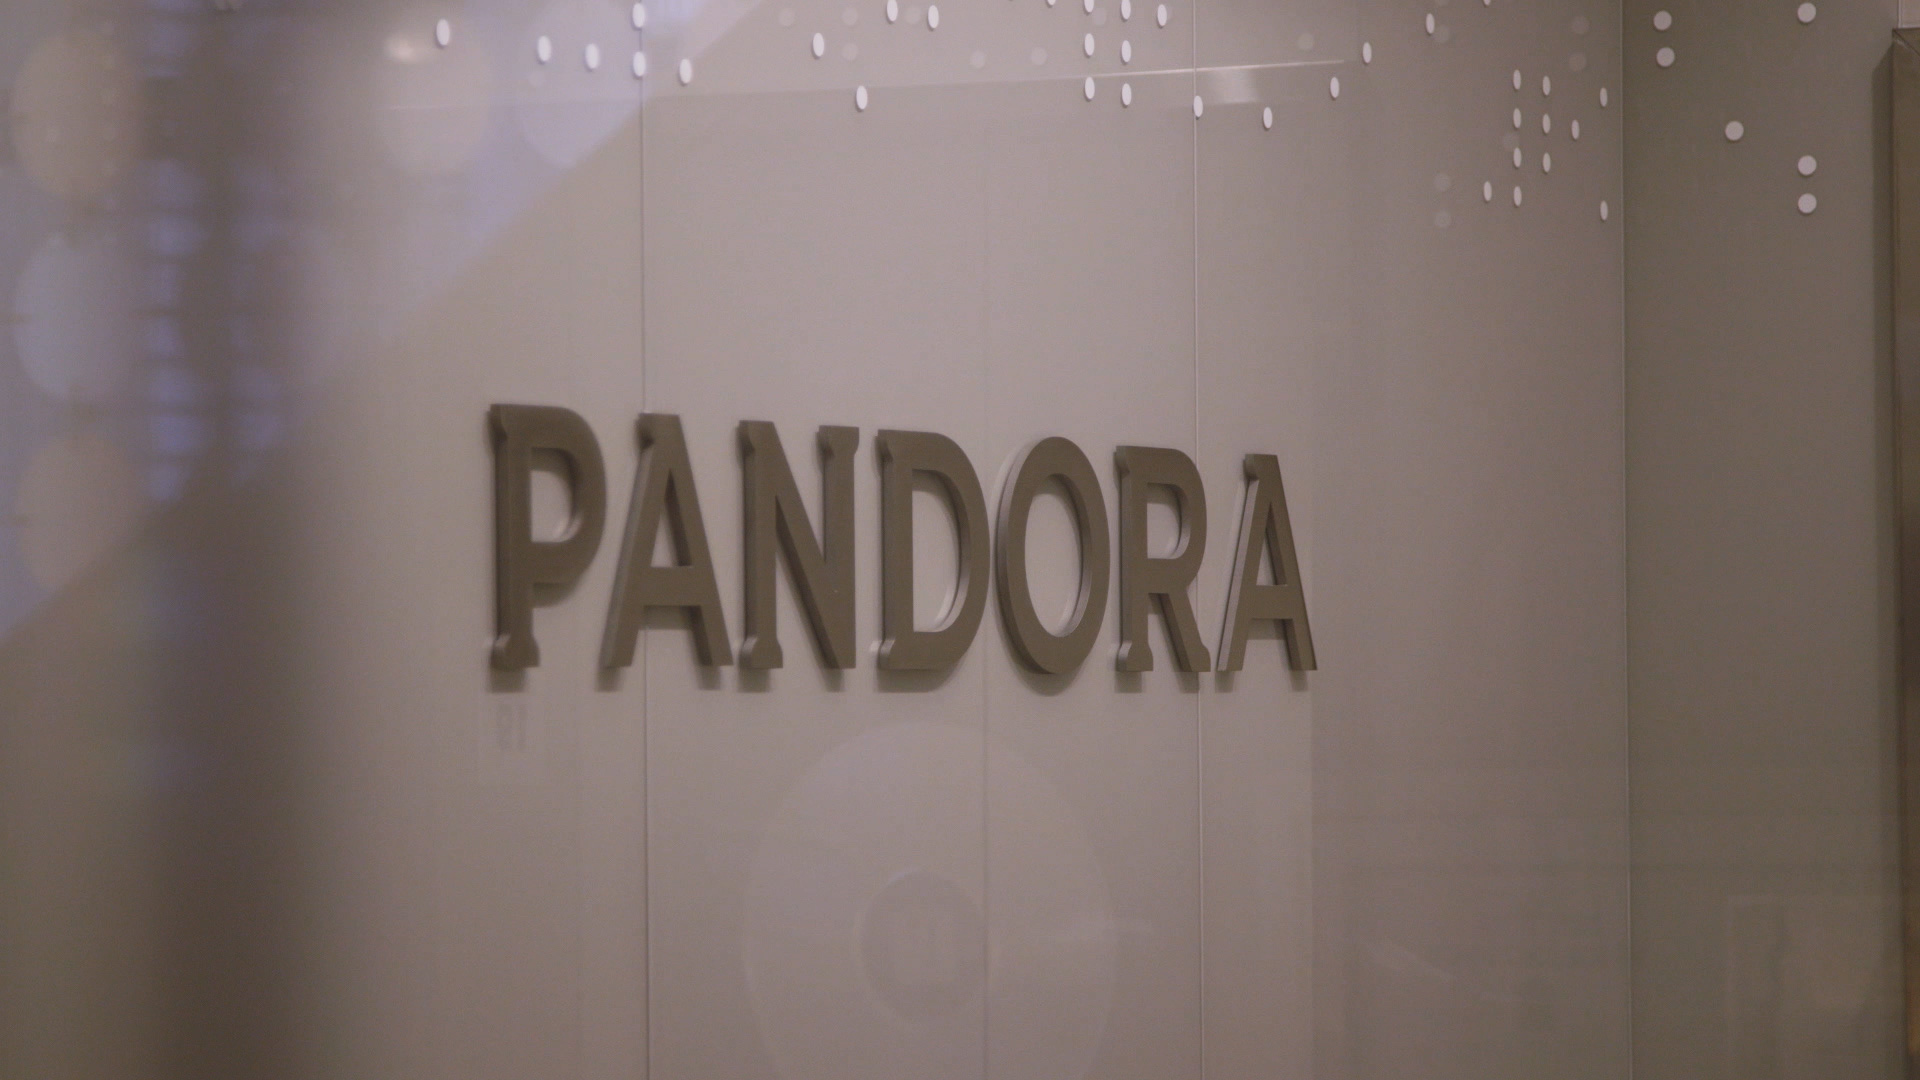 techcrunch.com - Sarah Perez - Pandora launches a personalized voice assistant on iOS and Android